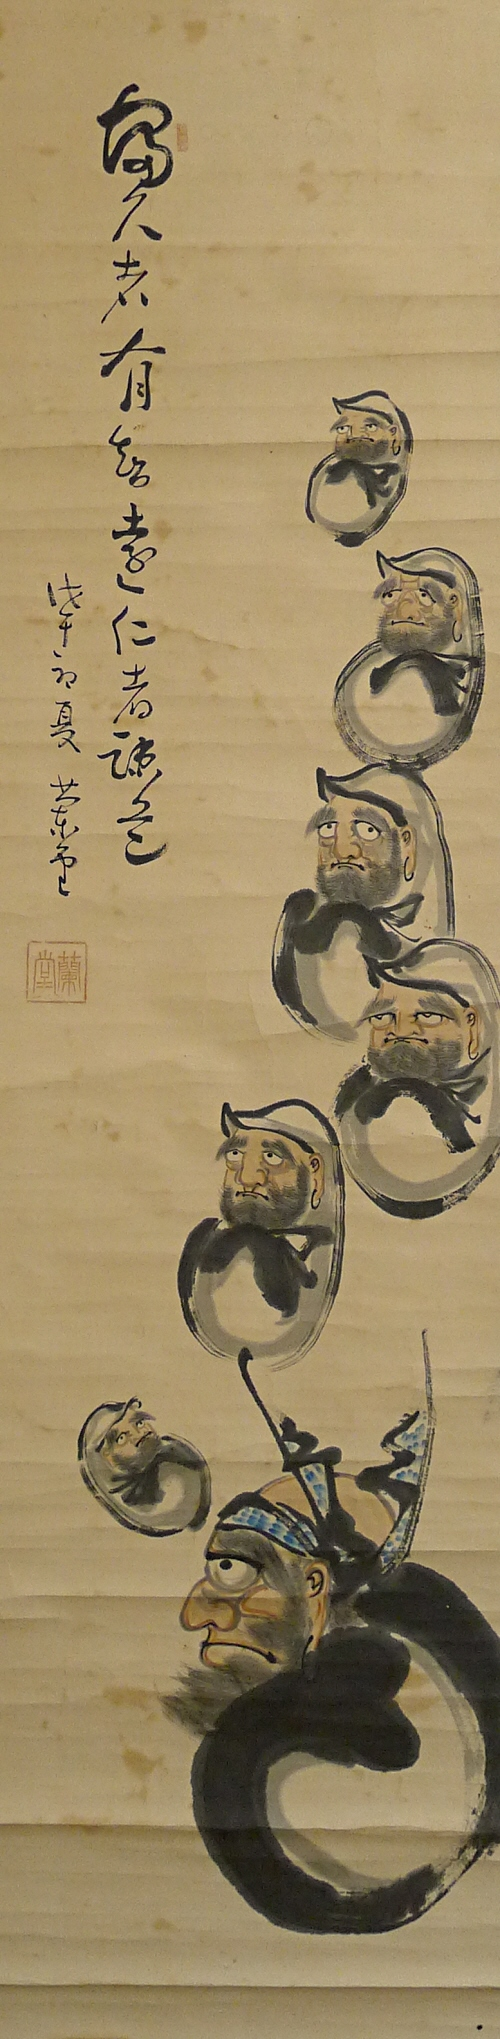 Bodhidharmas depicted with Japanese brush & Sumi ink